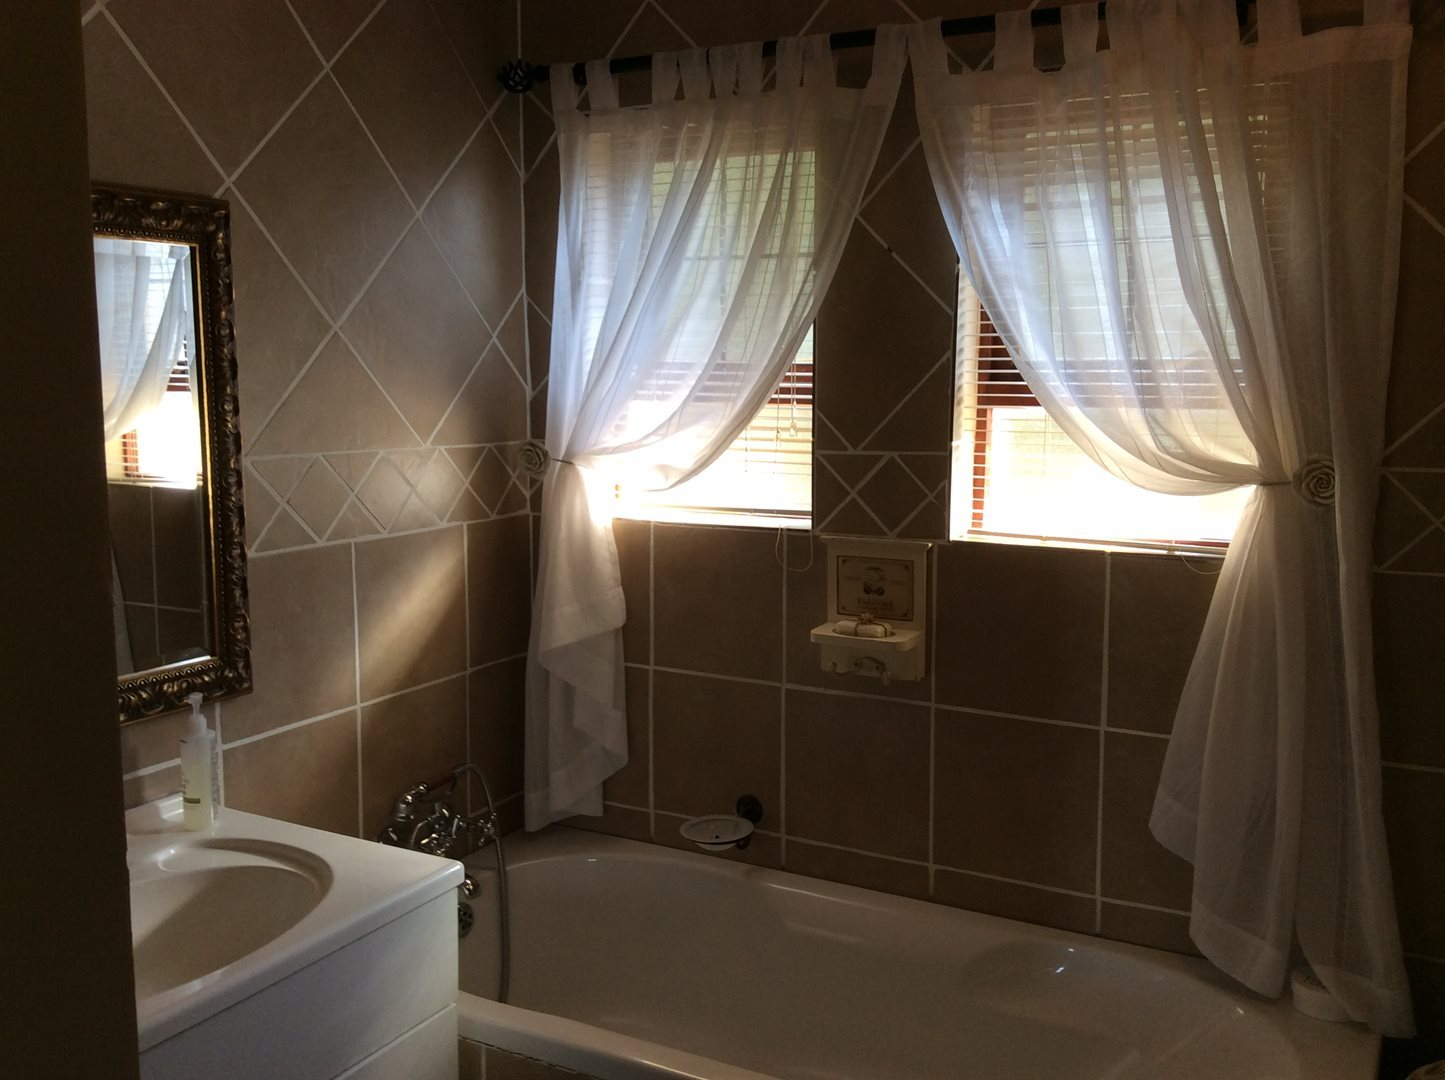 3 Bedroom House for sale in Montana Park ENT0074858 : photo#32